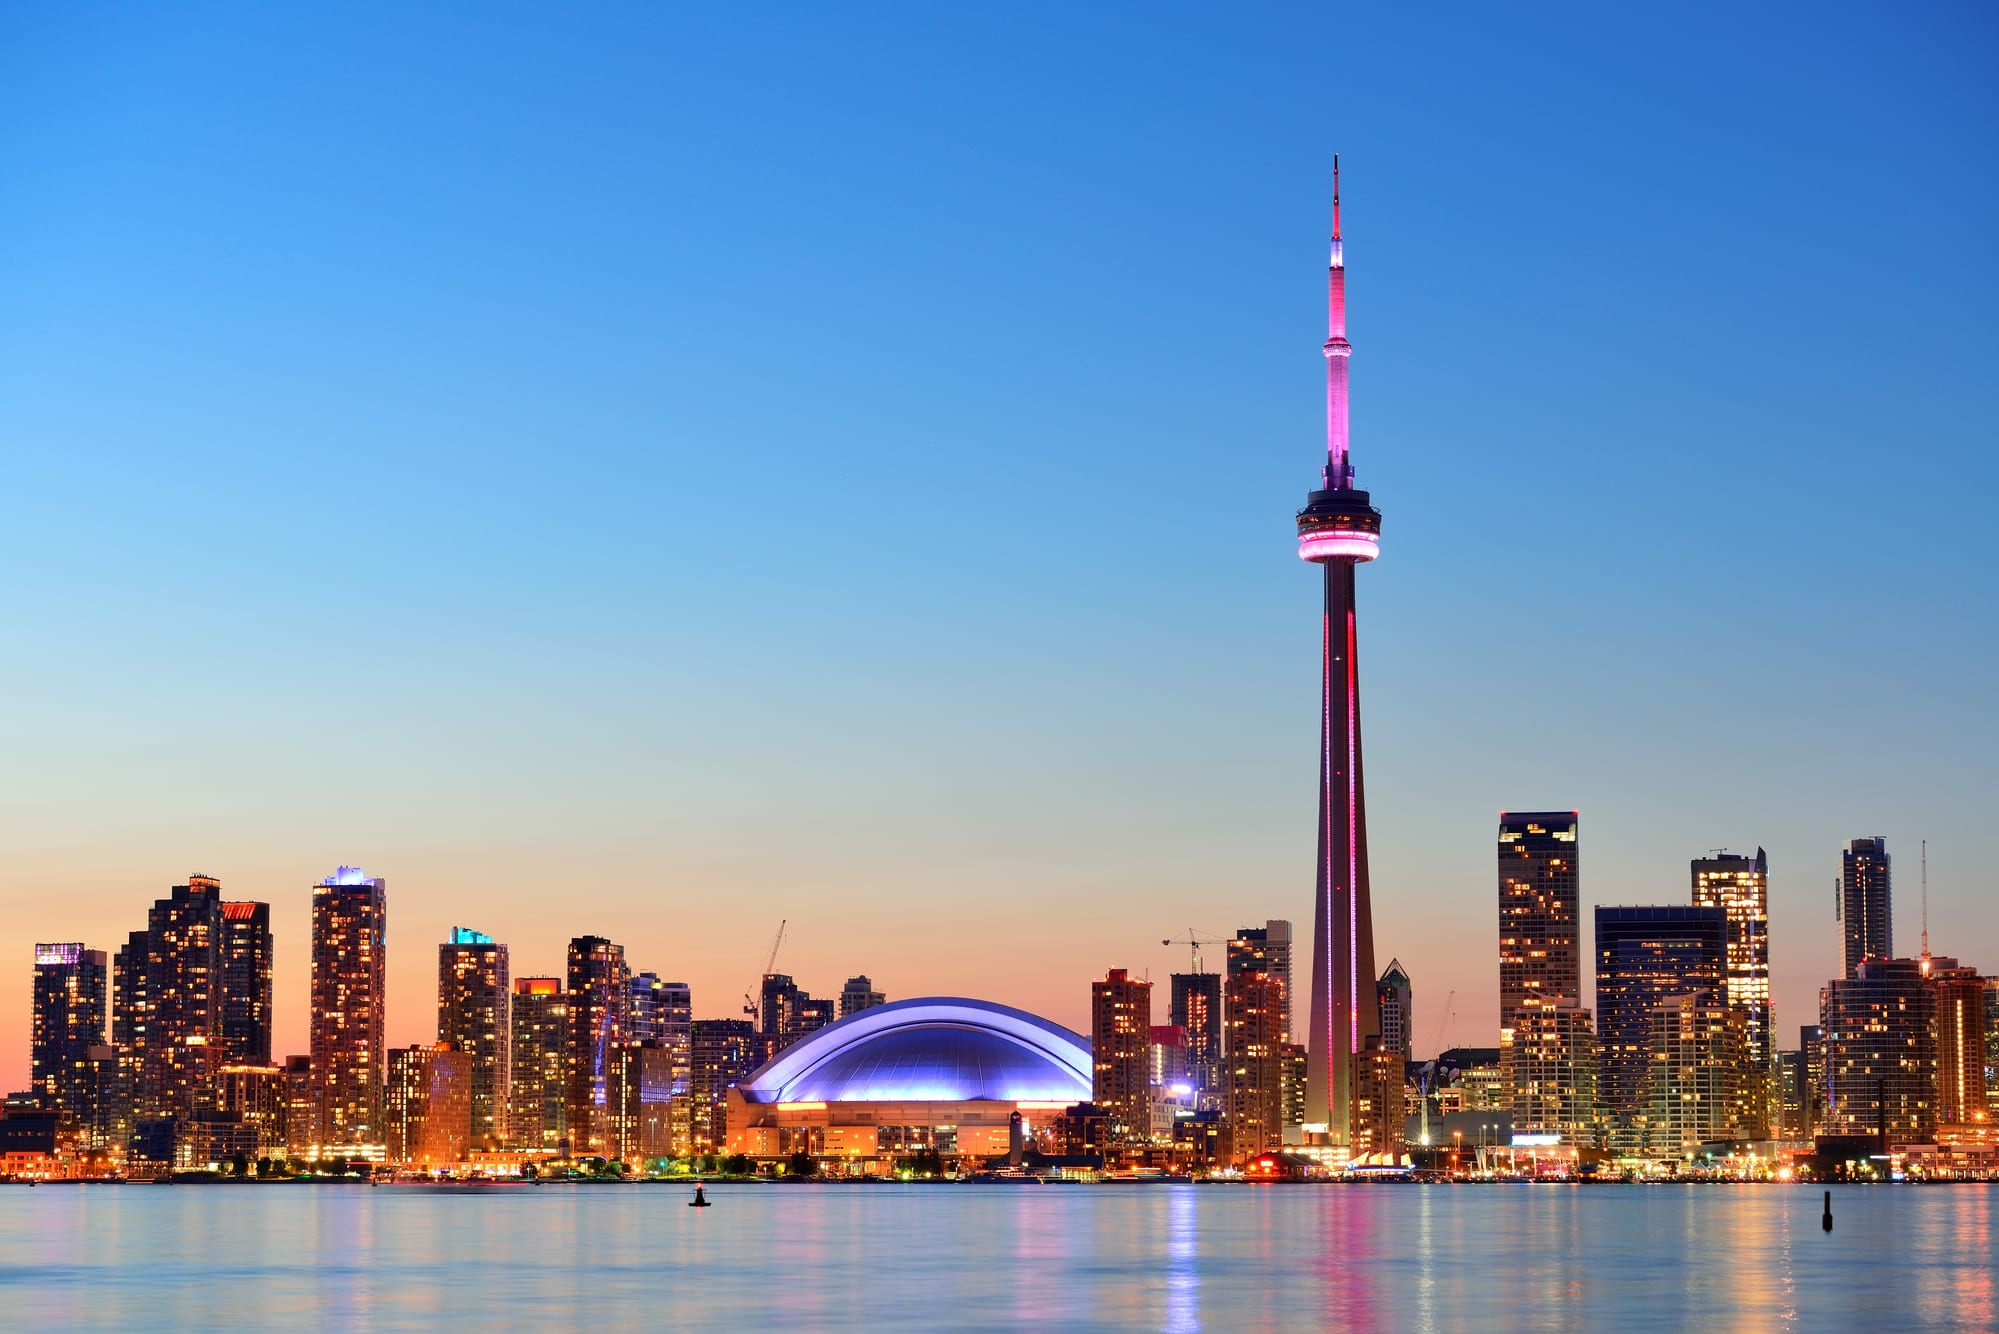 Toronto skyline - Canada's Neverending Weed Story - Ontarians unhappy with legal weed survey shows